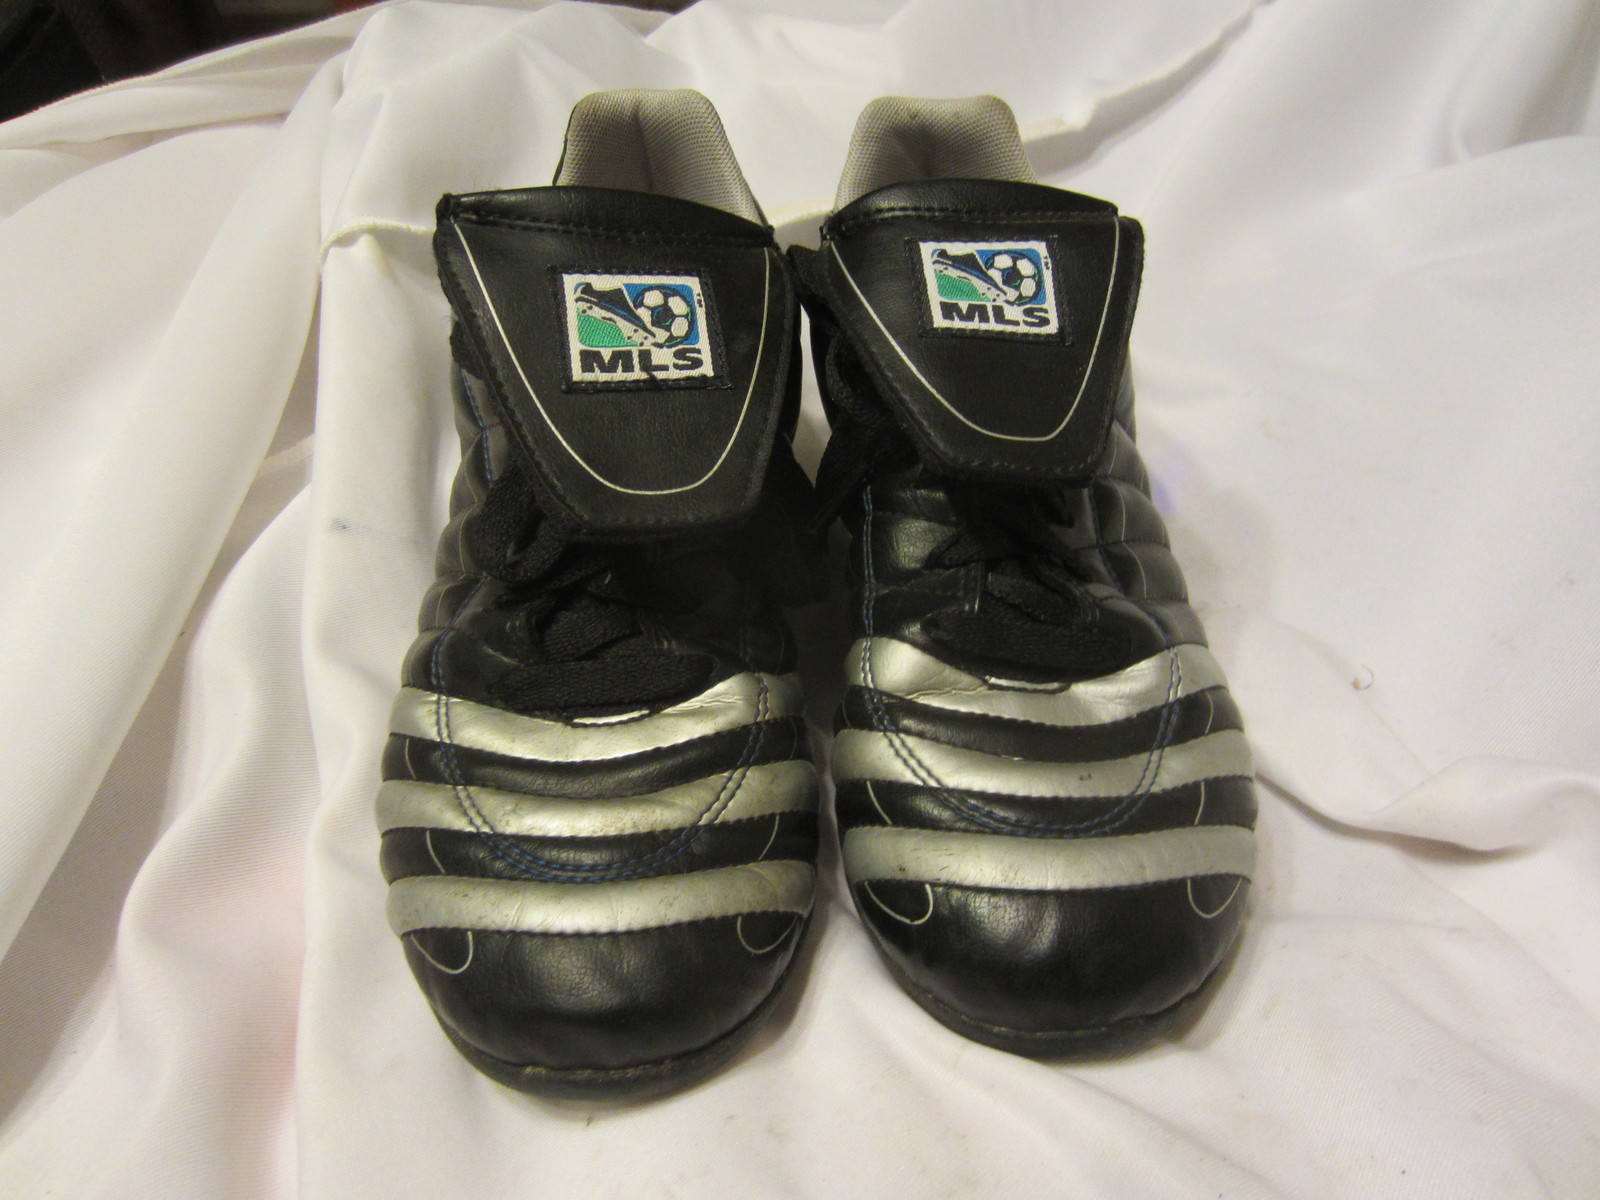 youth size 6 soccer cleats